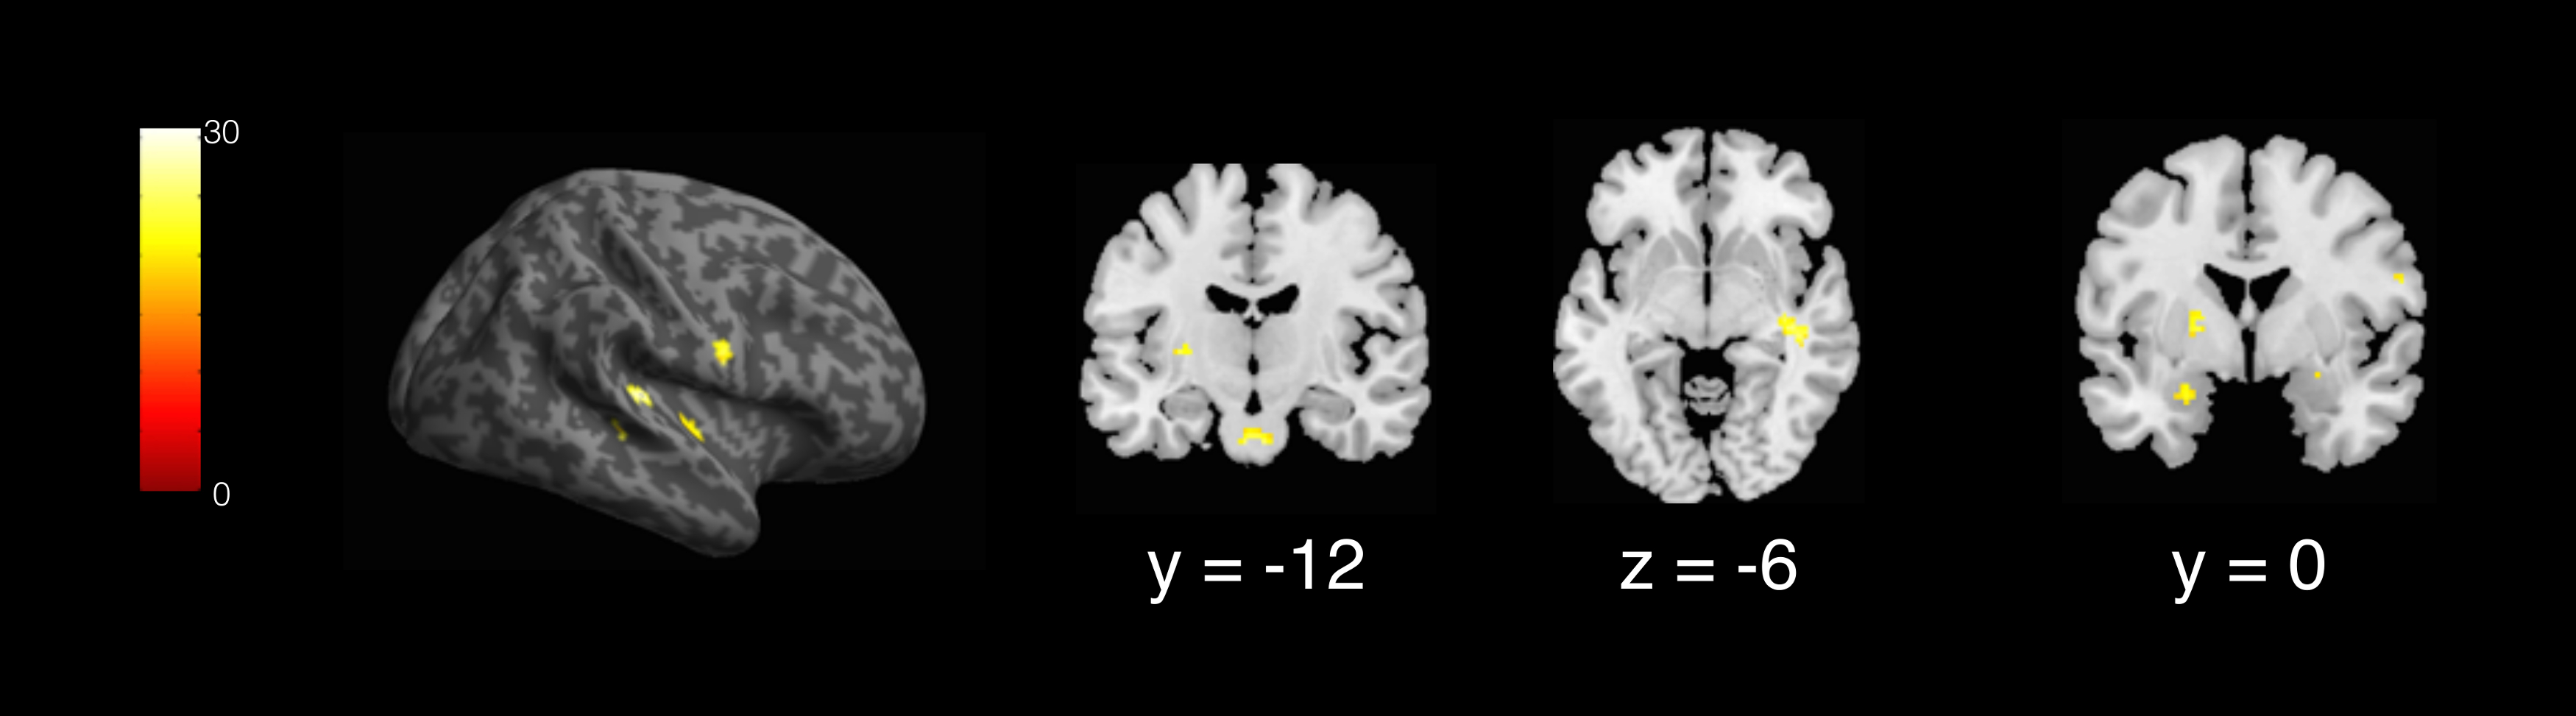 fMRI Mapping of Brain Activity Associated with the Vocal Production